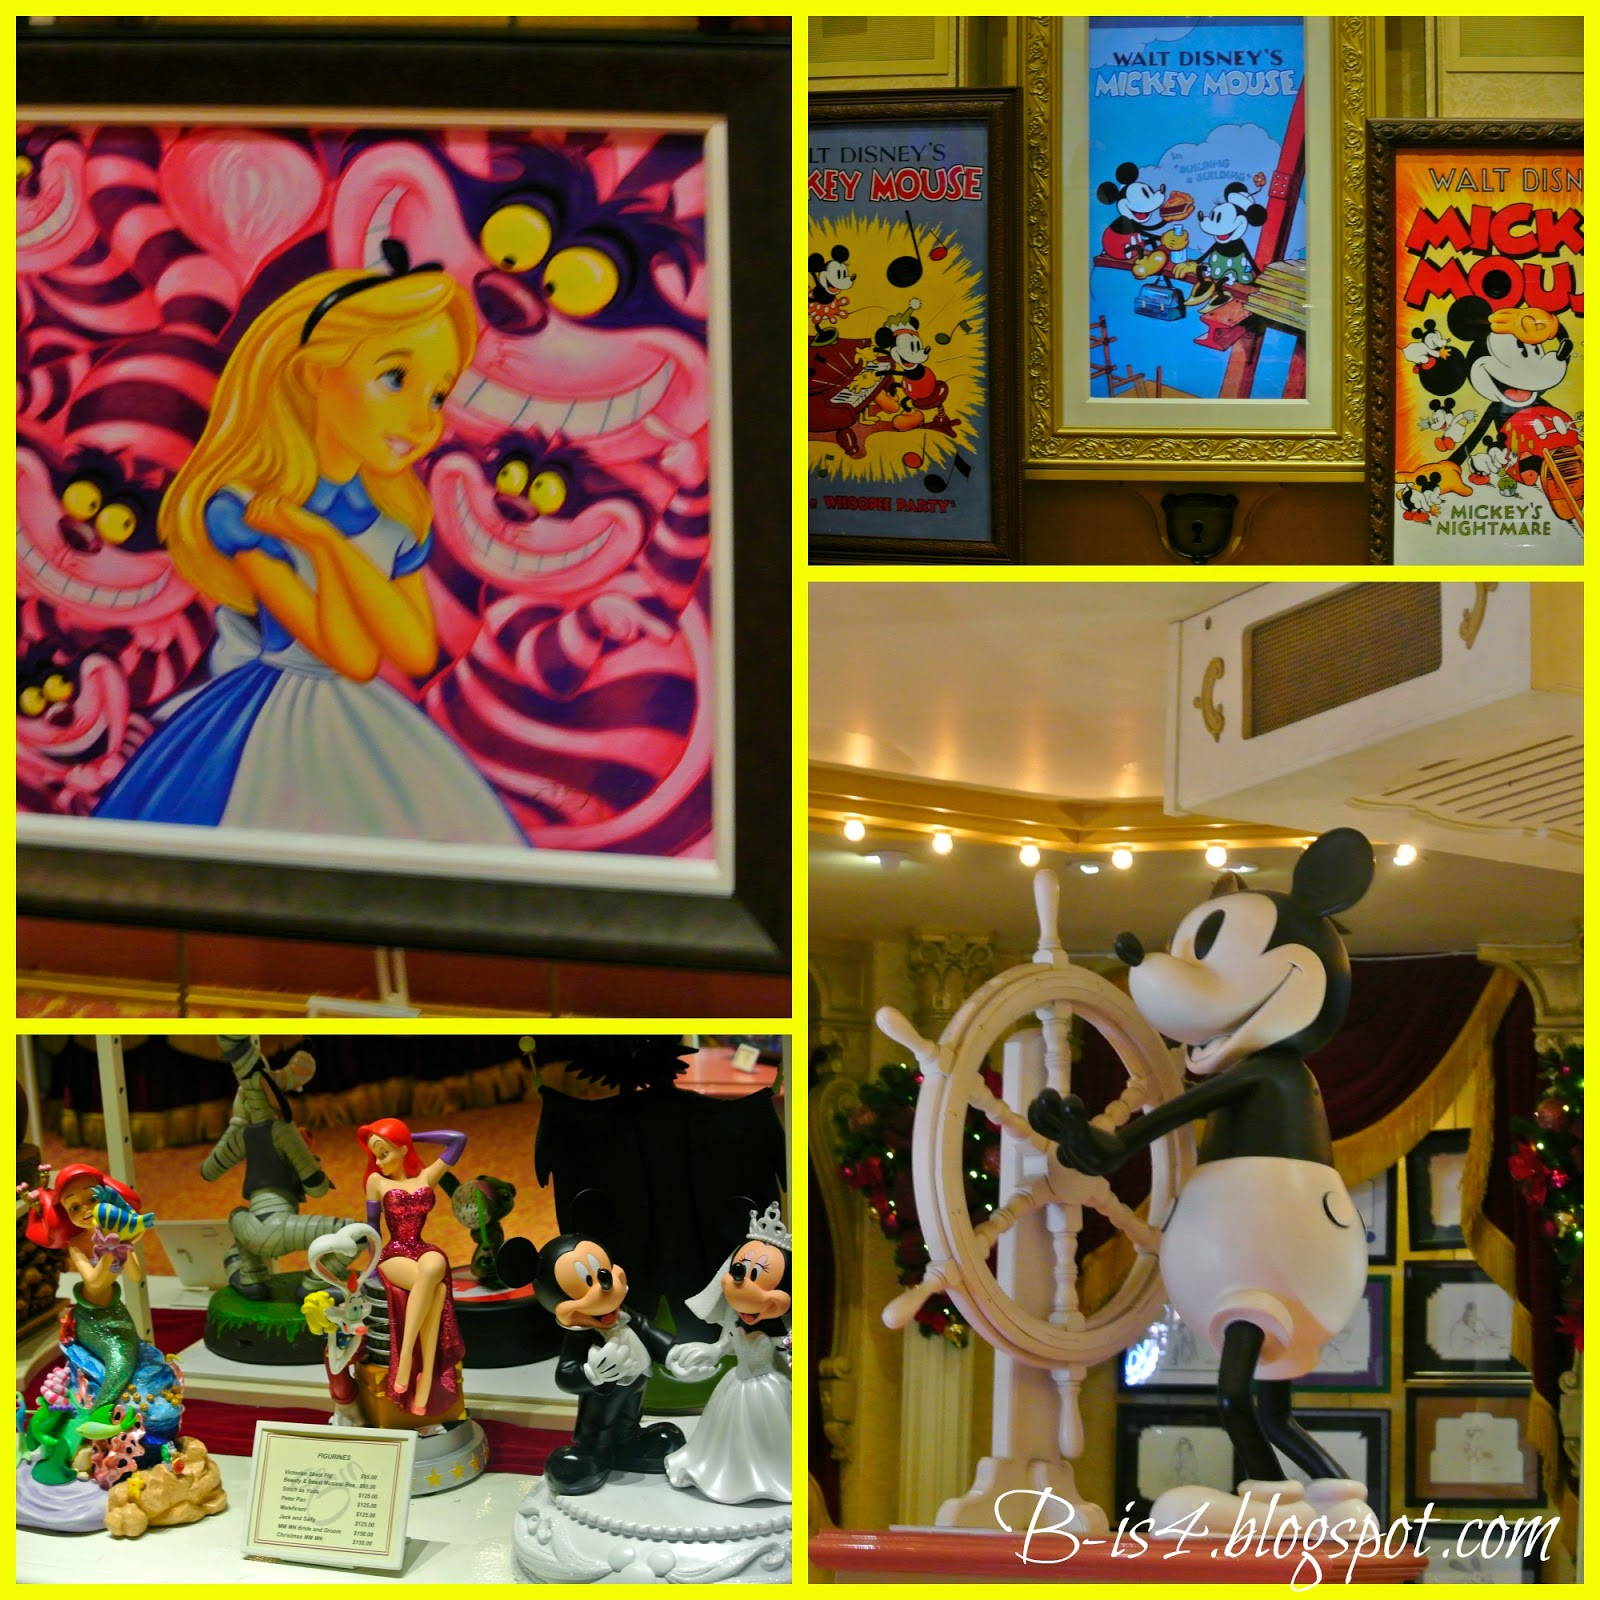 Disney store, family vacation, Alice in Wonderland